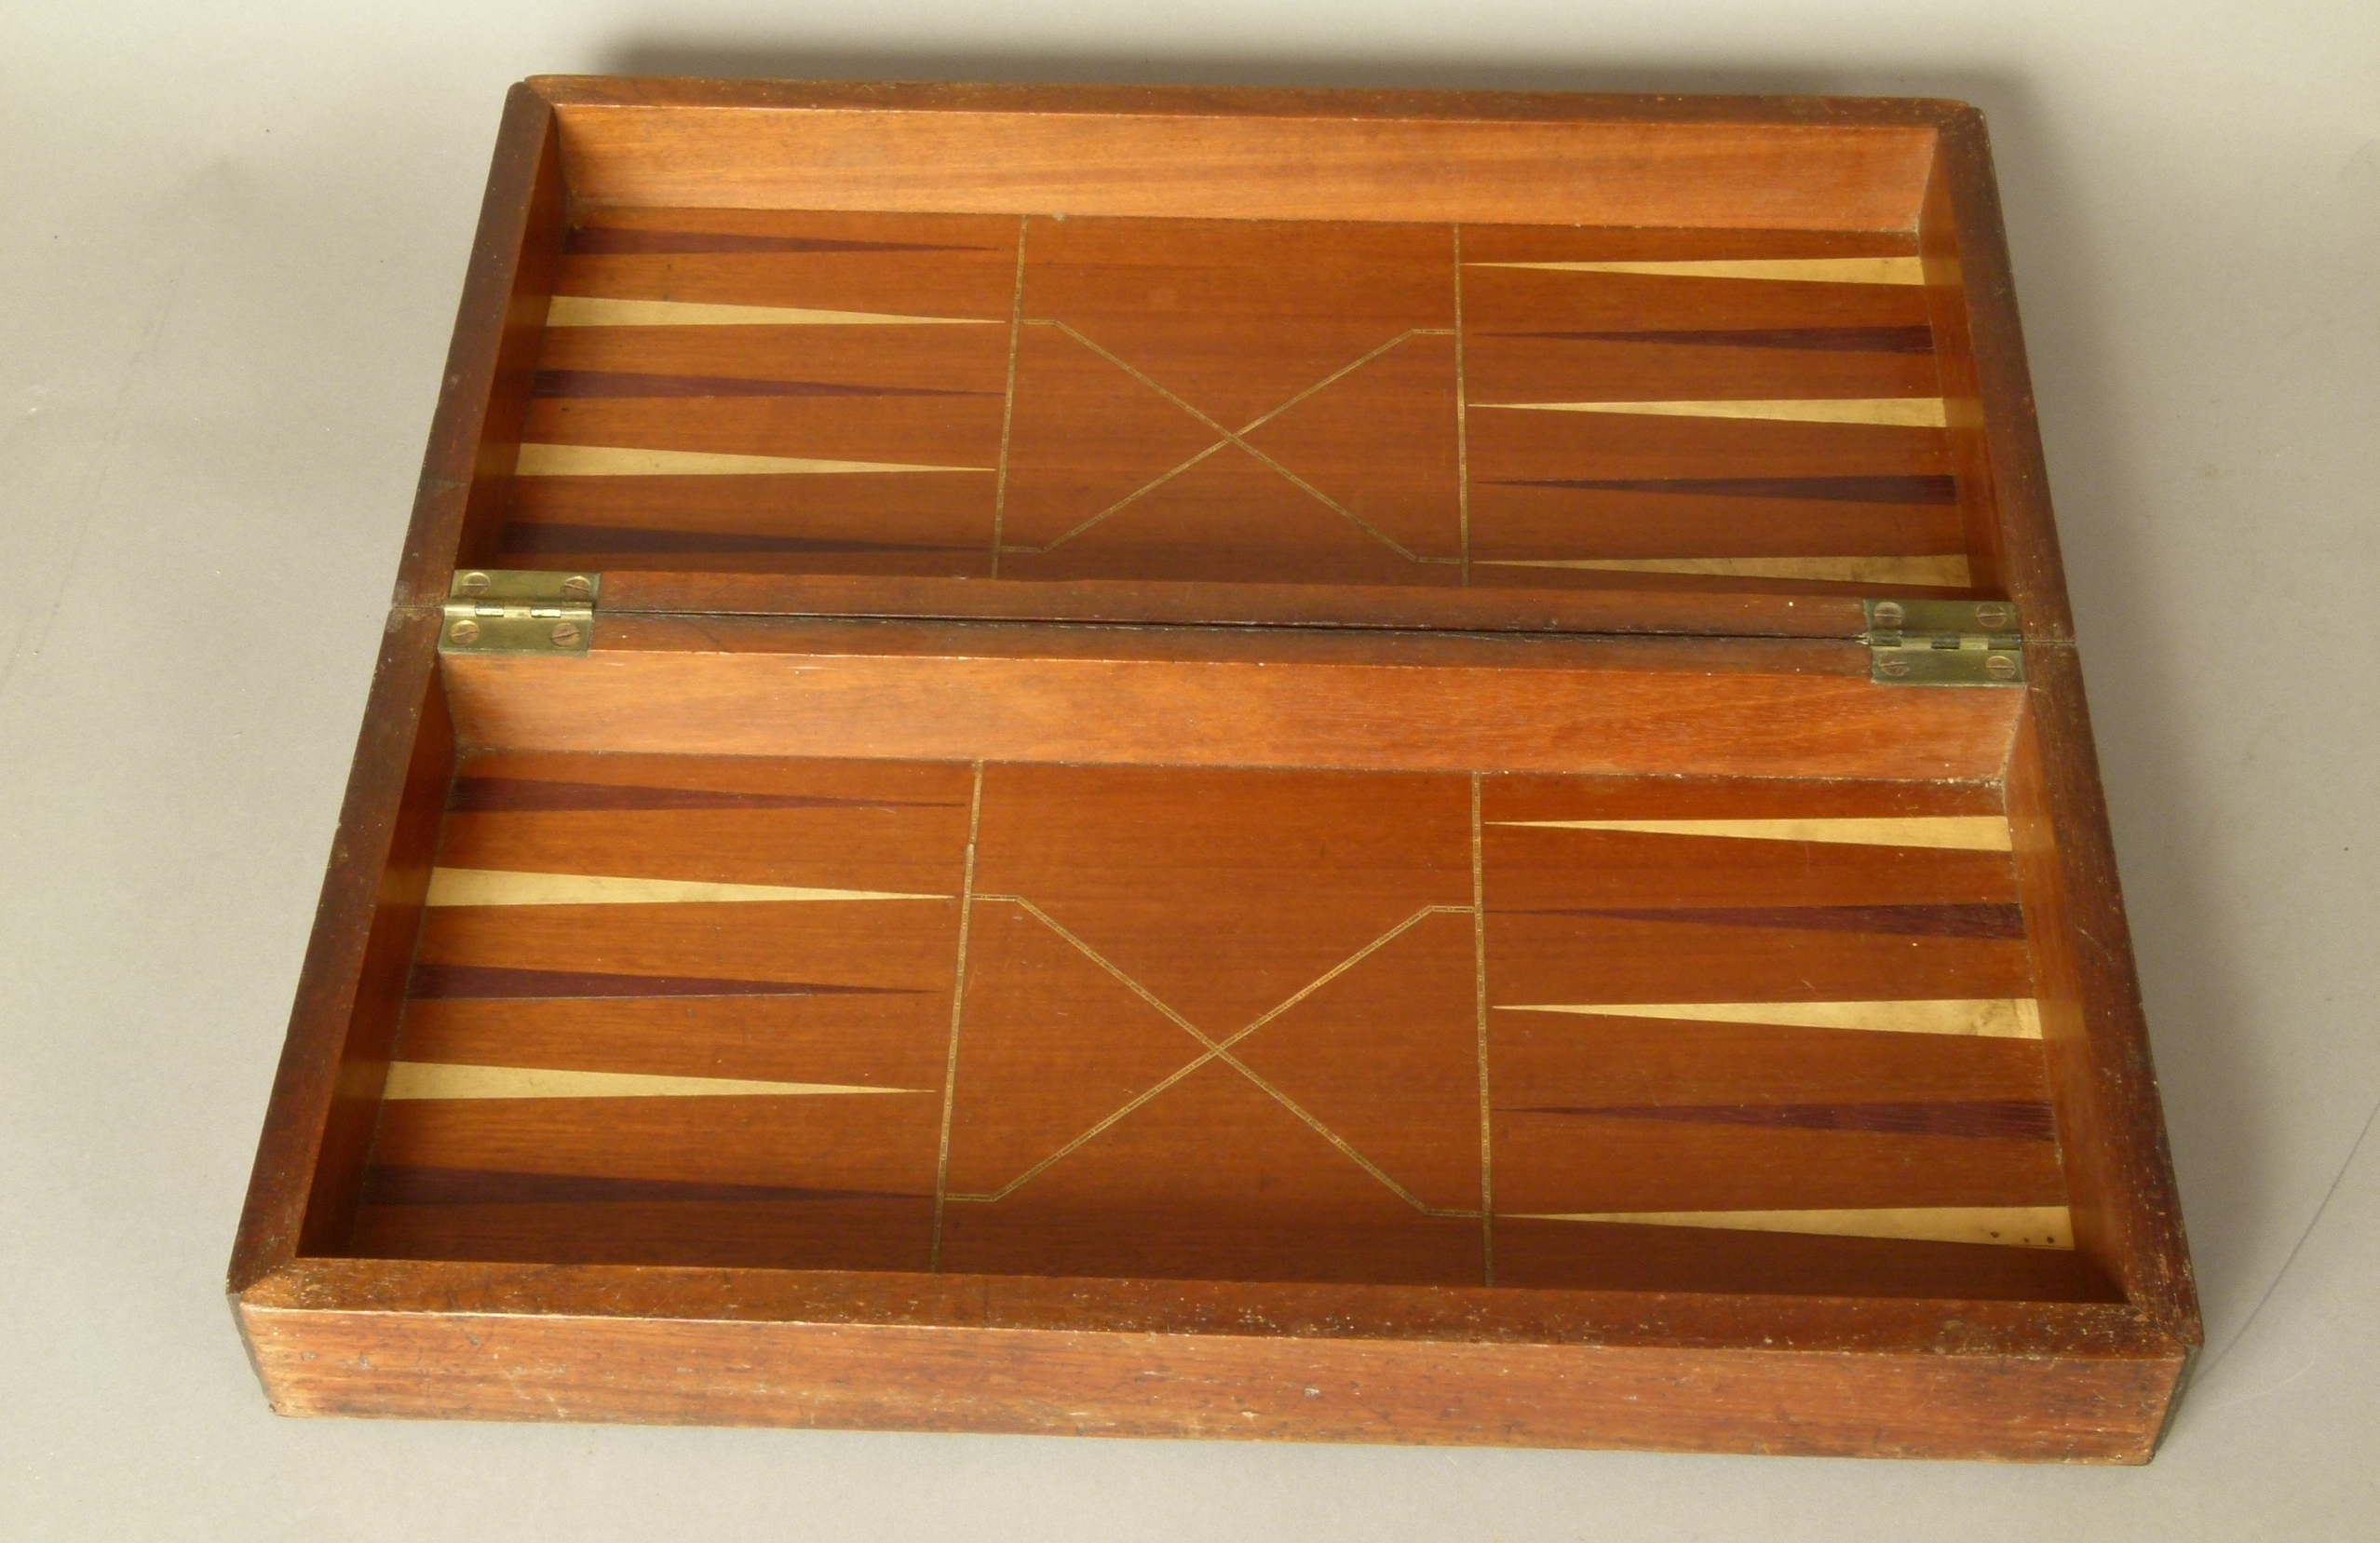 Lot 271 - A 19TH CENTURY INLAID MAHOGANY CHESSBOARD/BACKGAMMON BOX, the top with boxwood and rosewood board